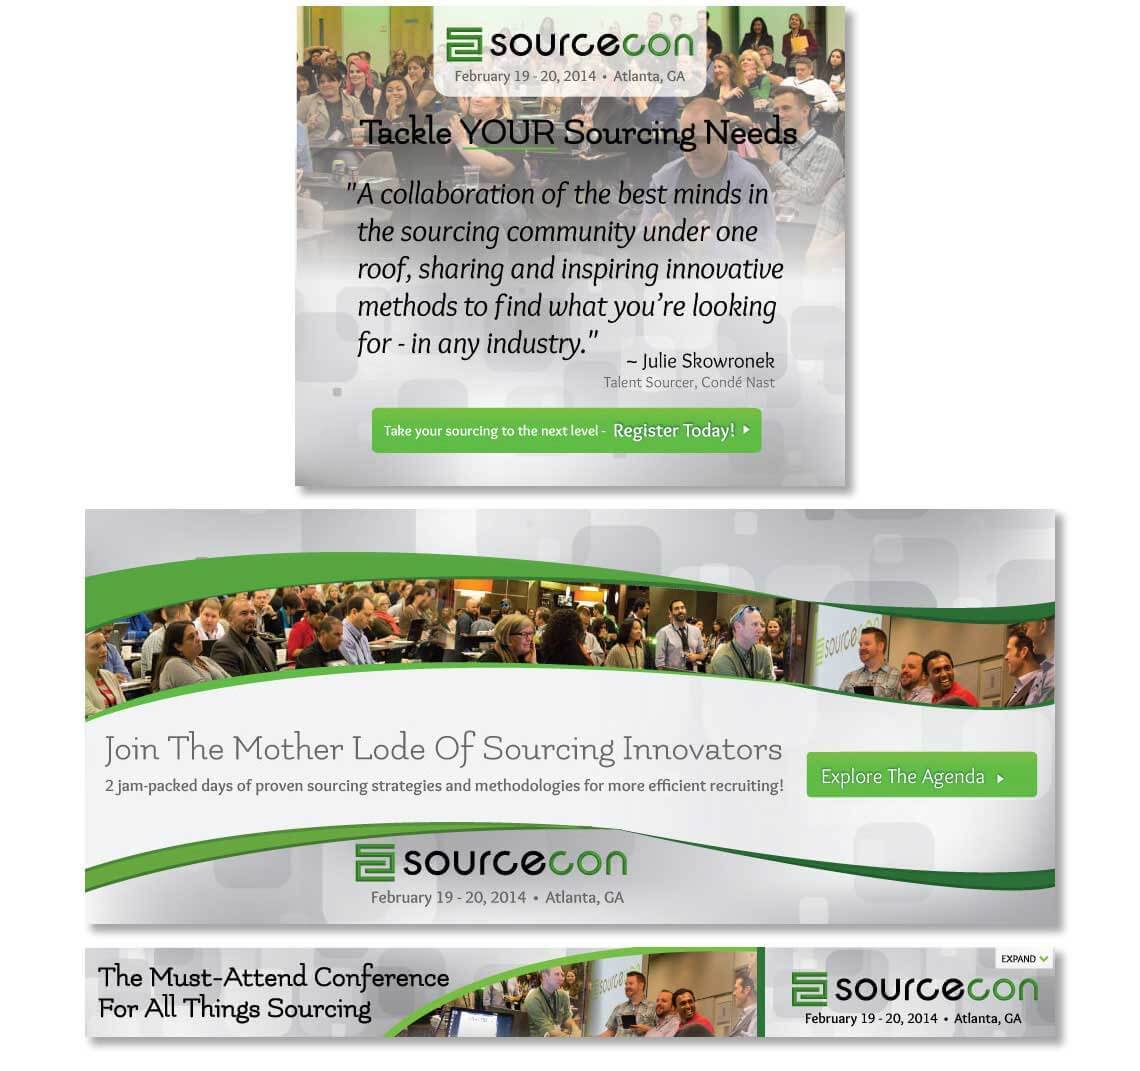 SourceCon Conference Ads